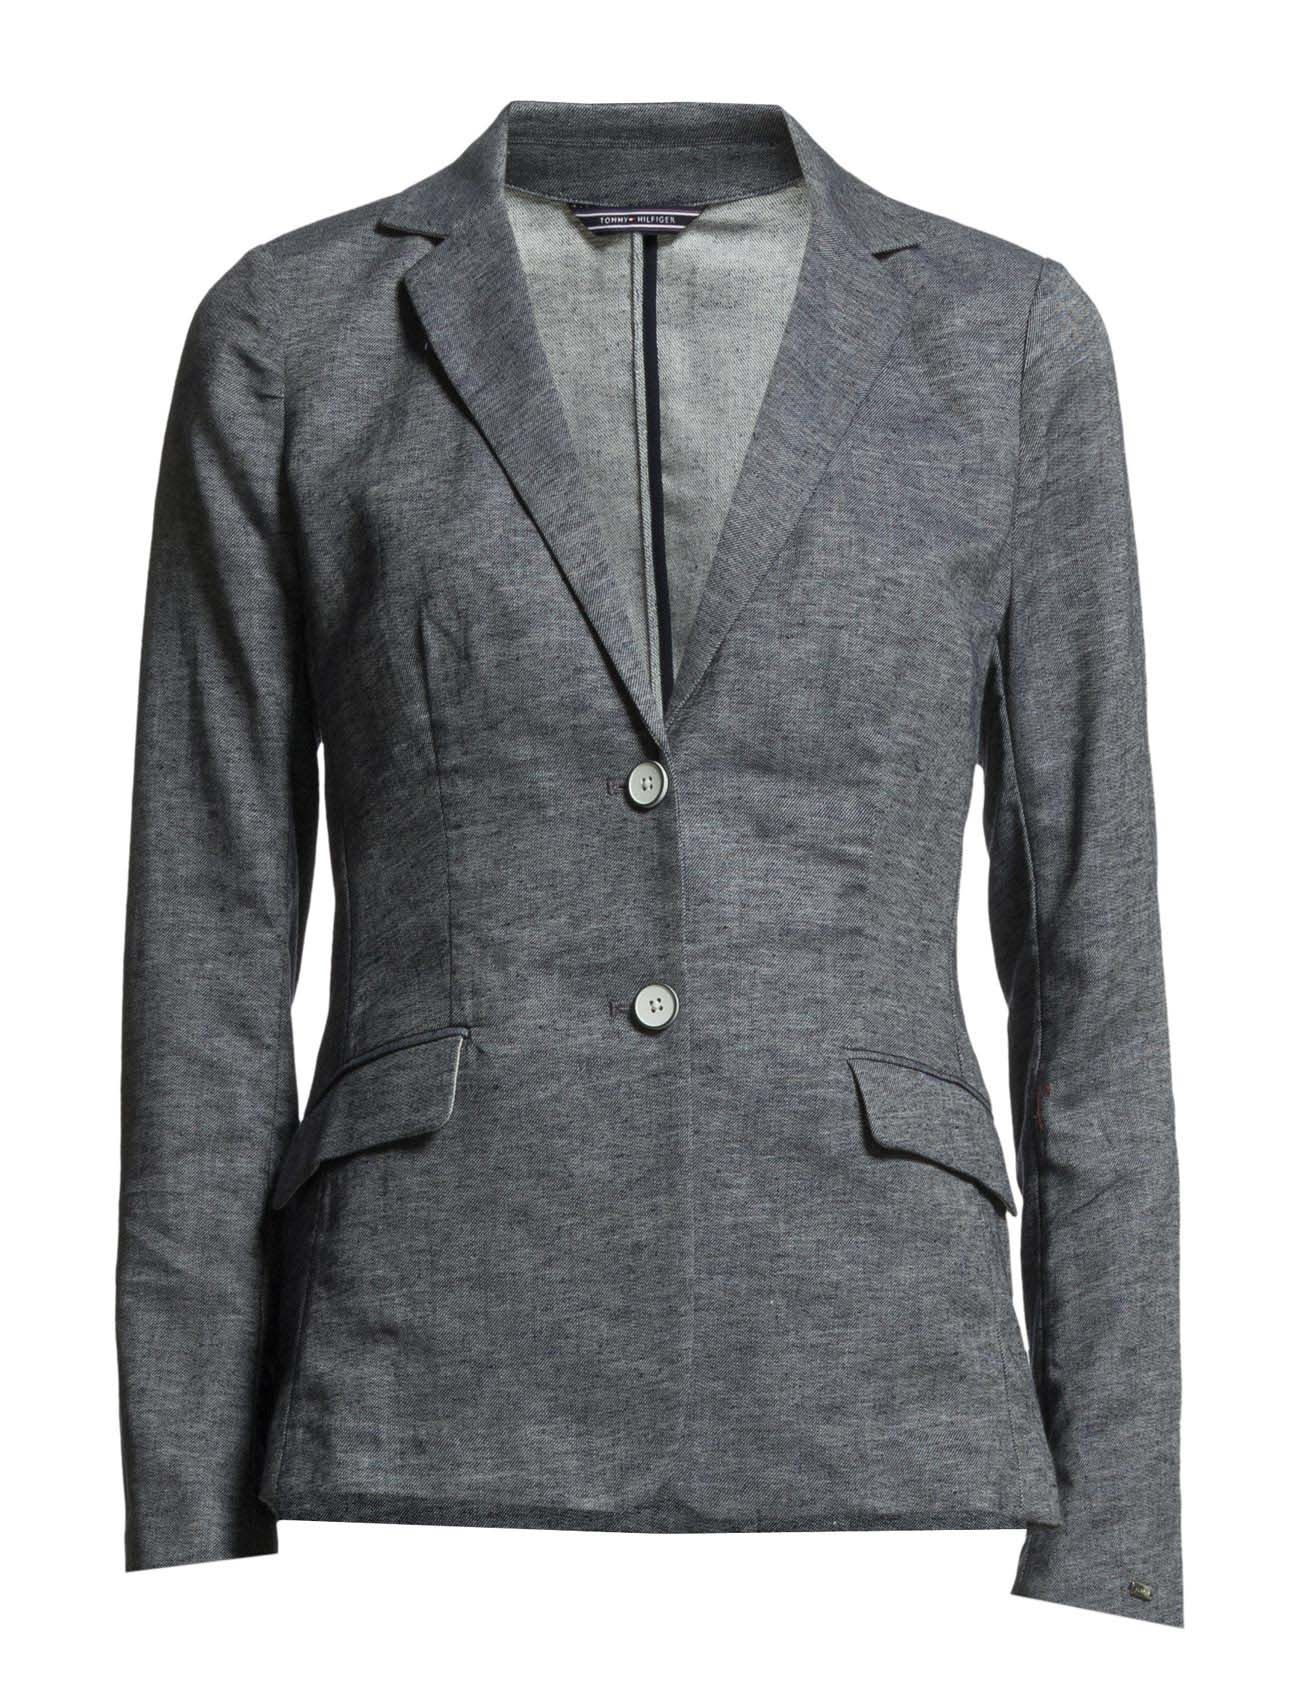 Undigo New York Blazer